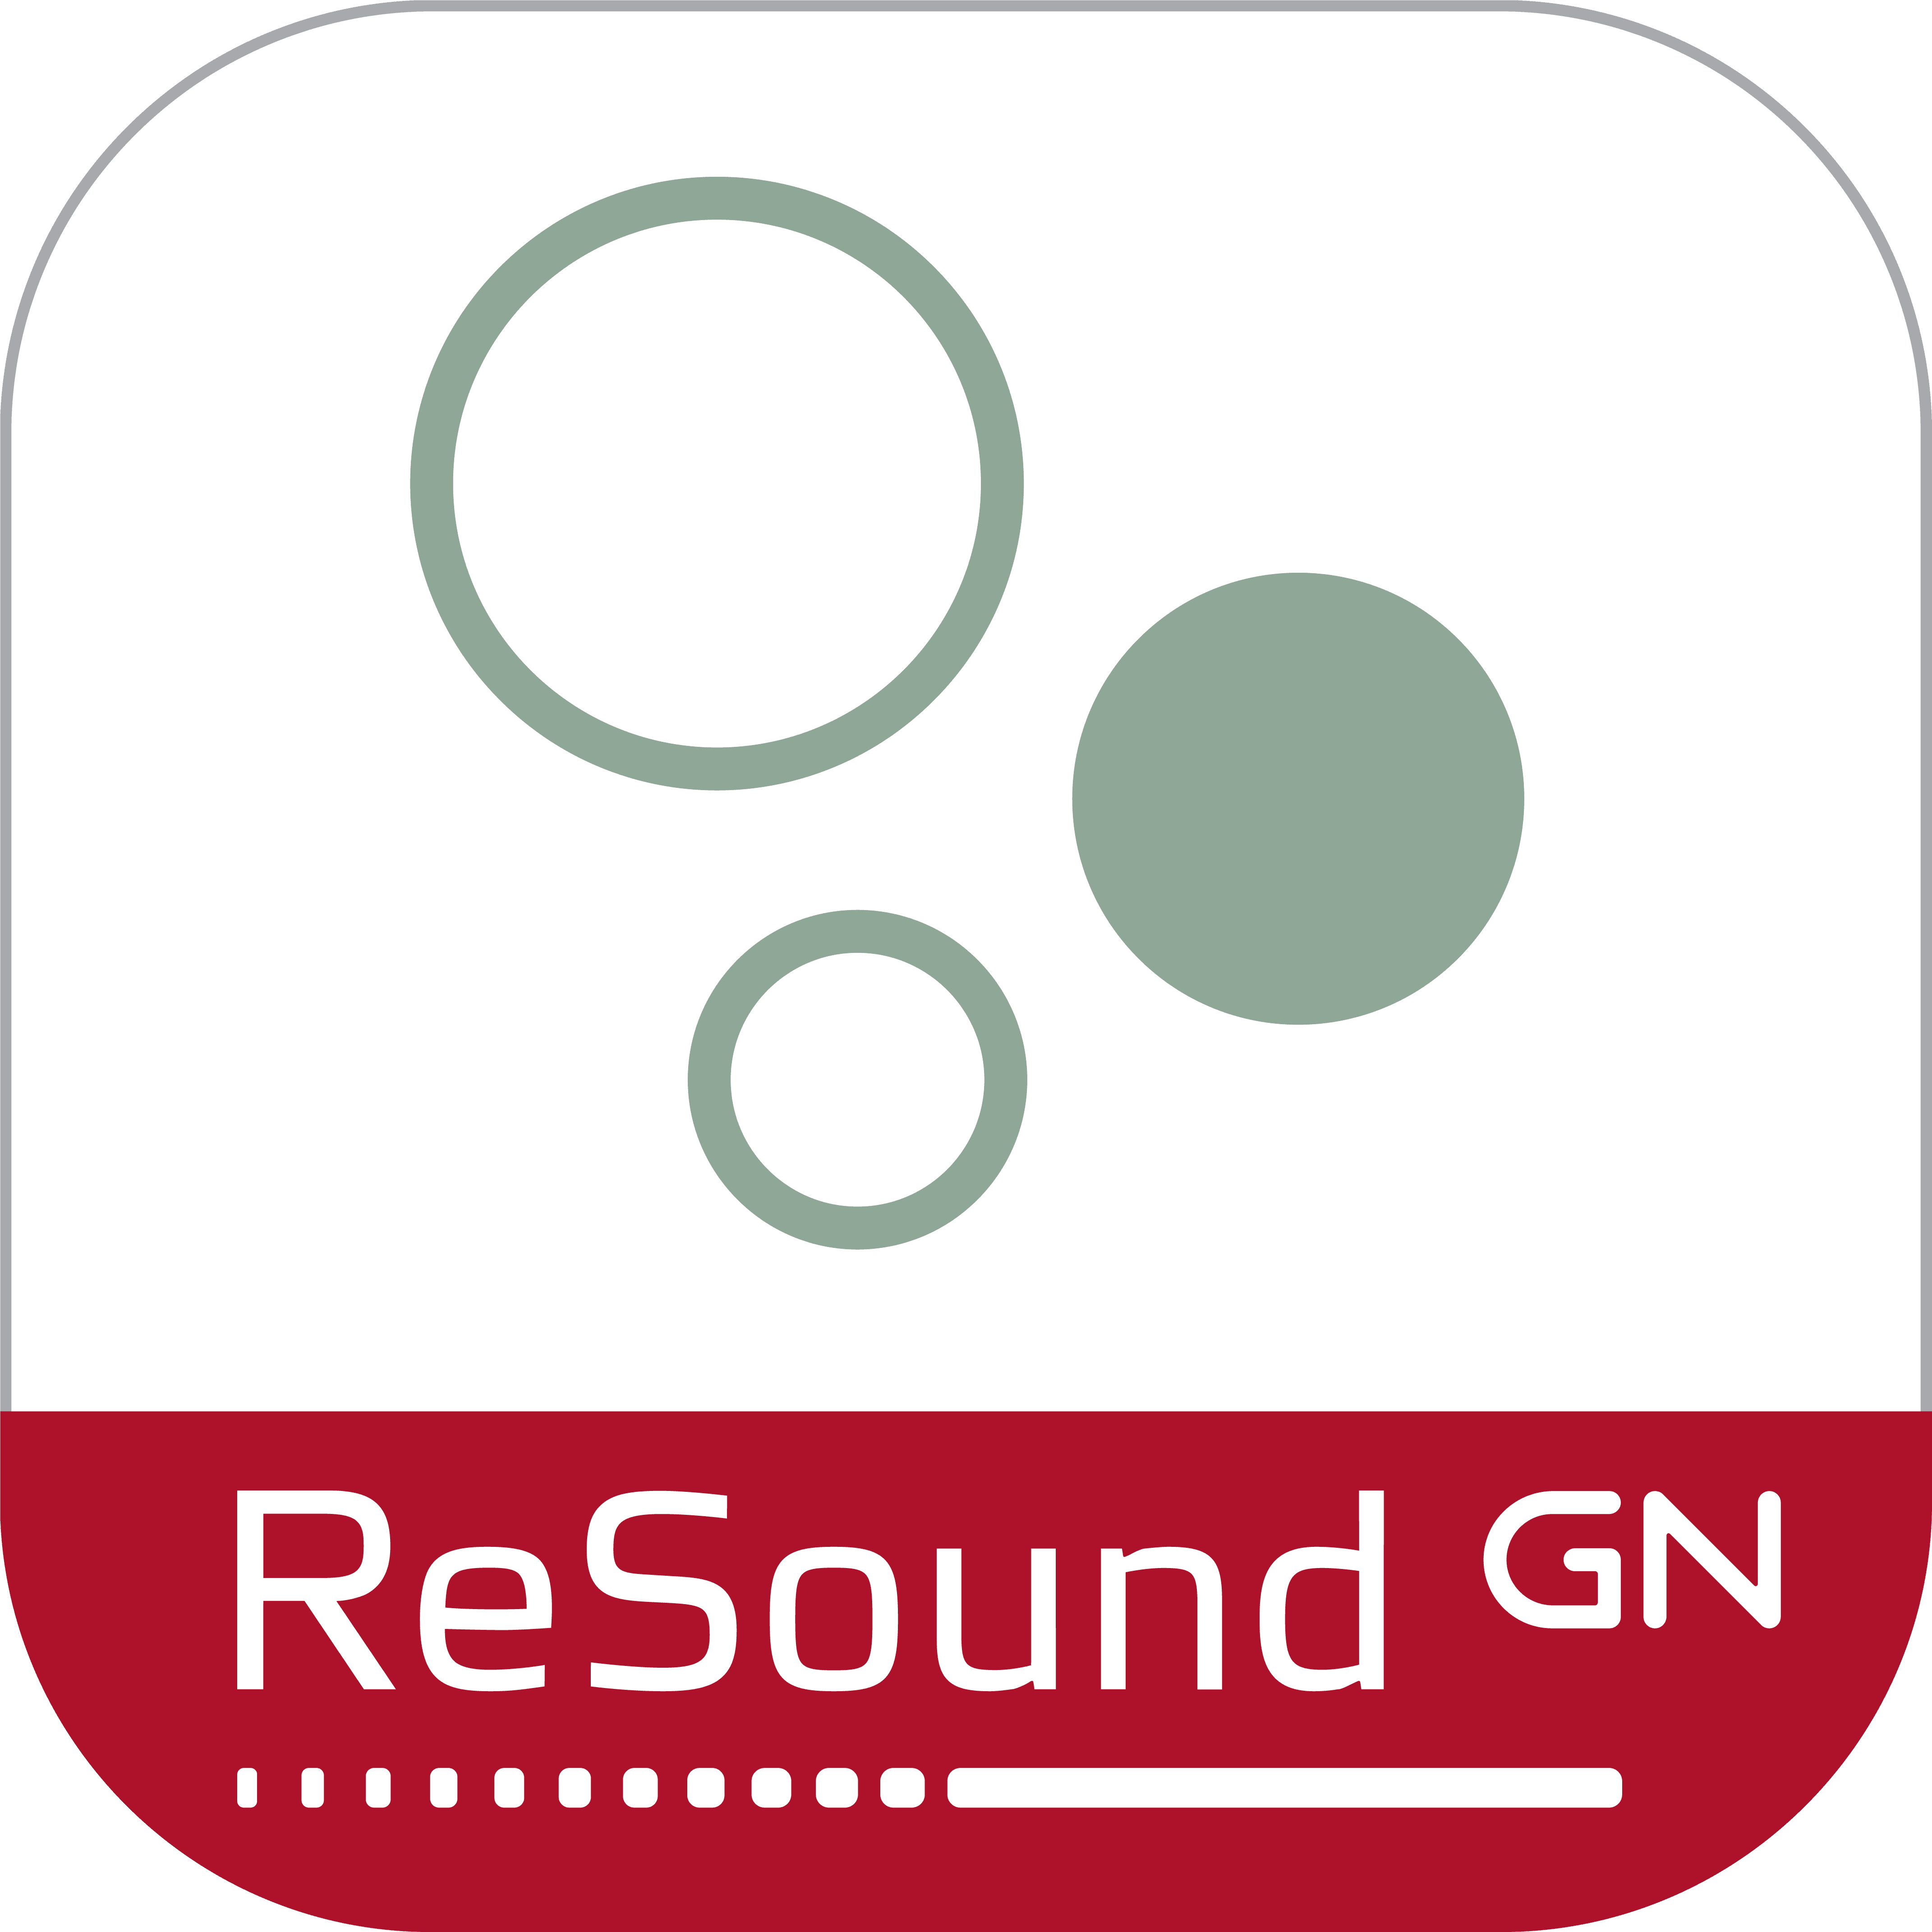 ReSound Relief app ikon.